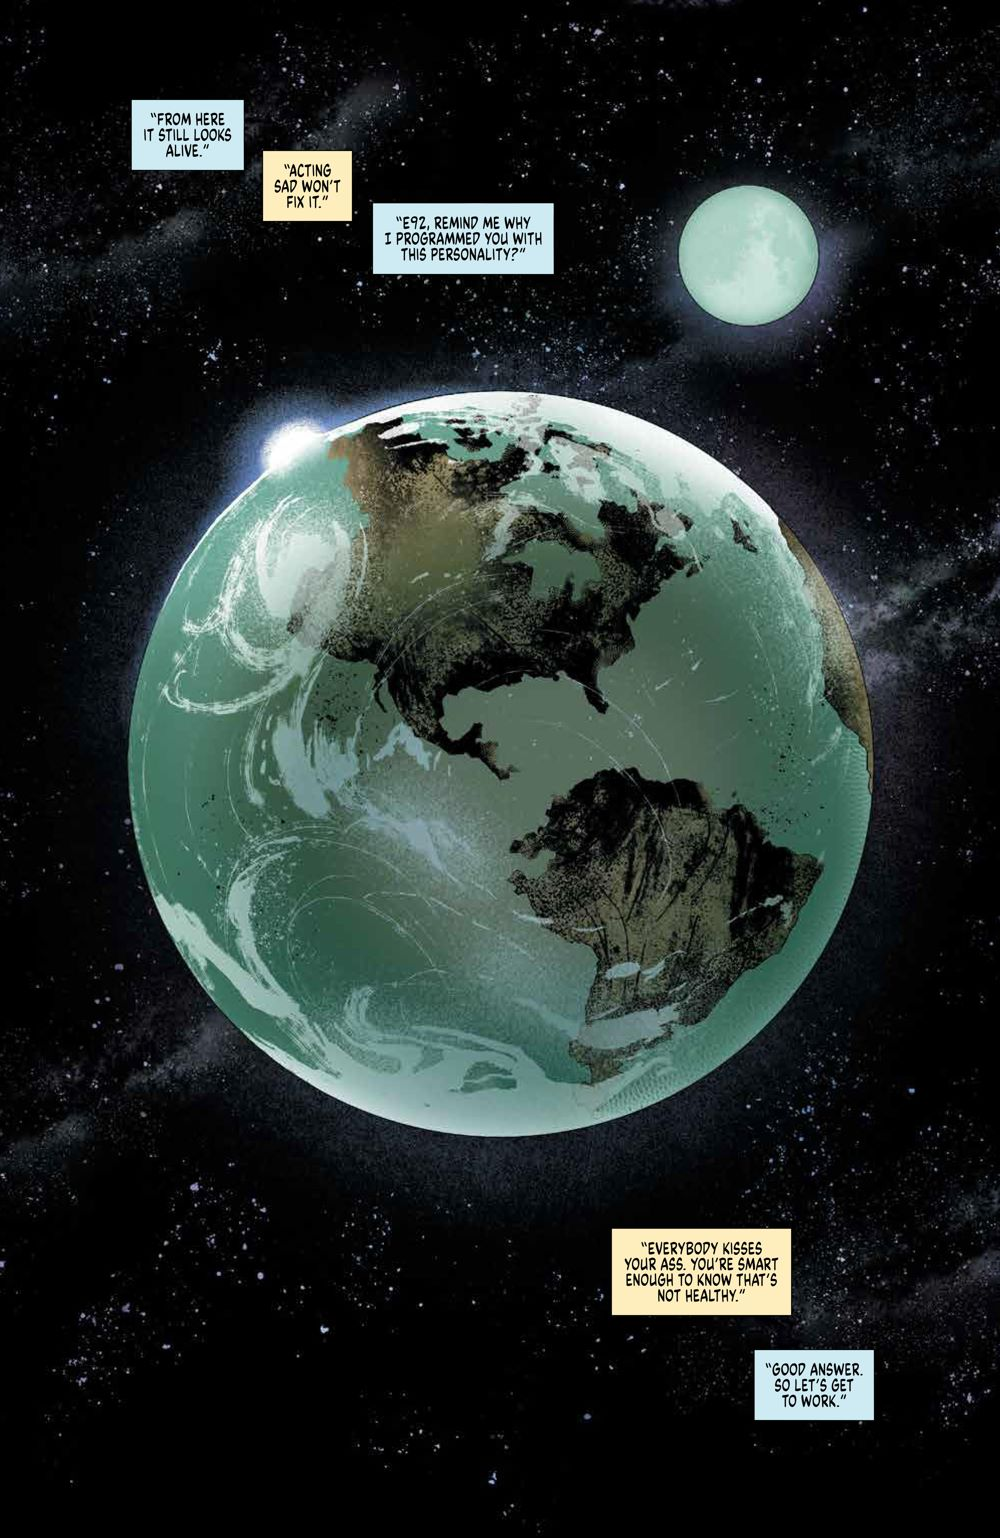 Eve_002_PRESS_3-1 ComicList Previews: EVE #2 (OF 5)